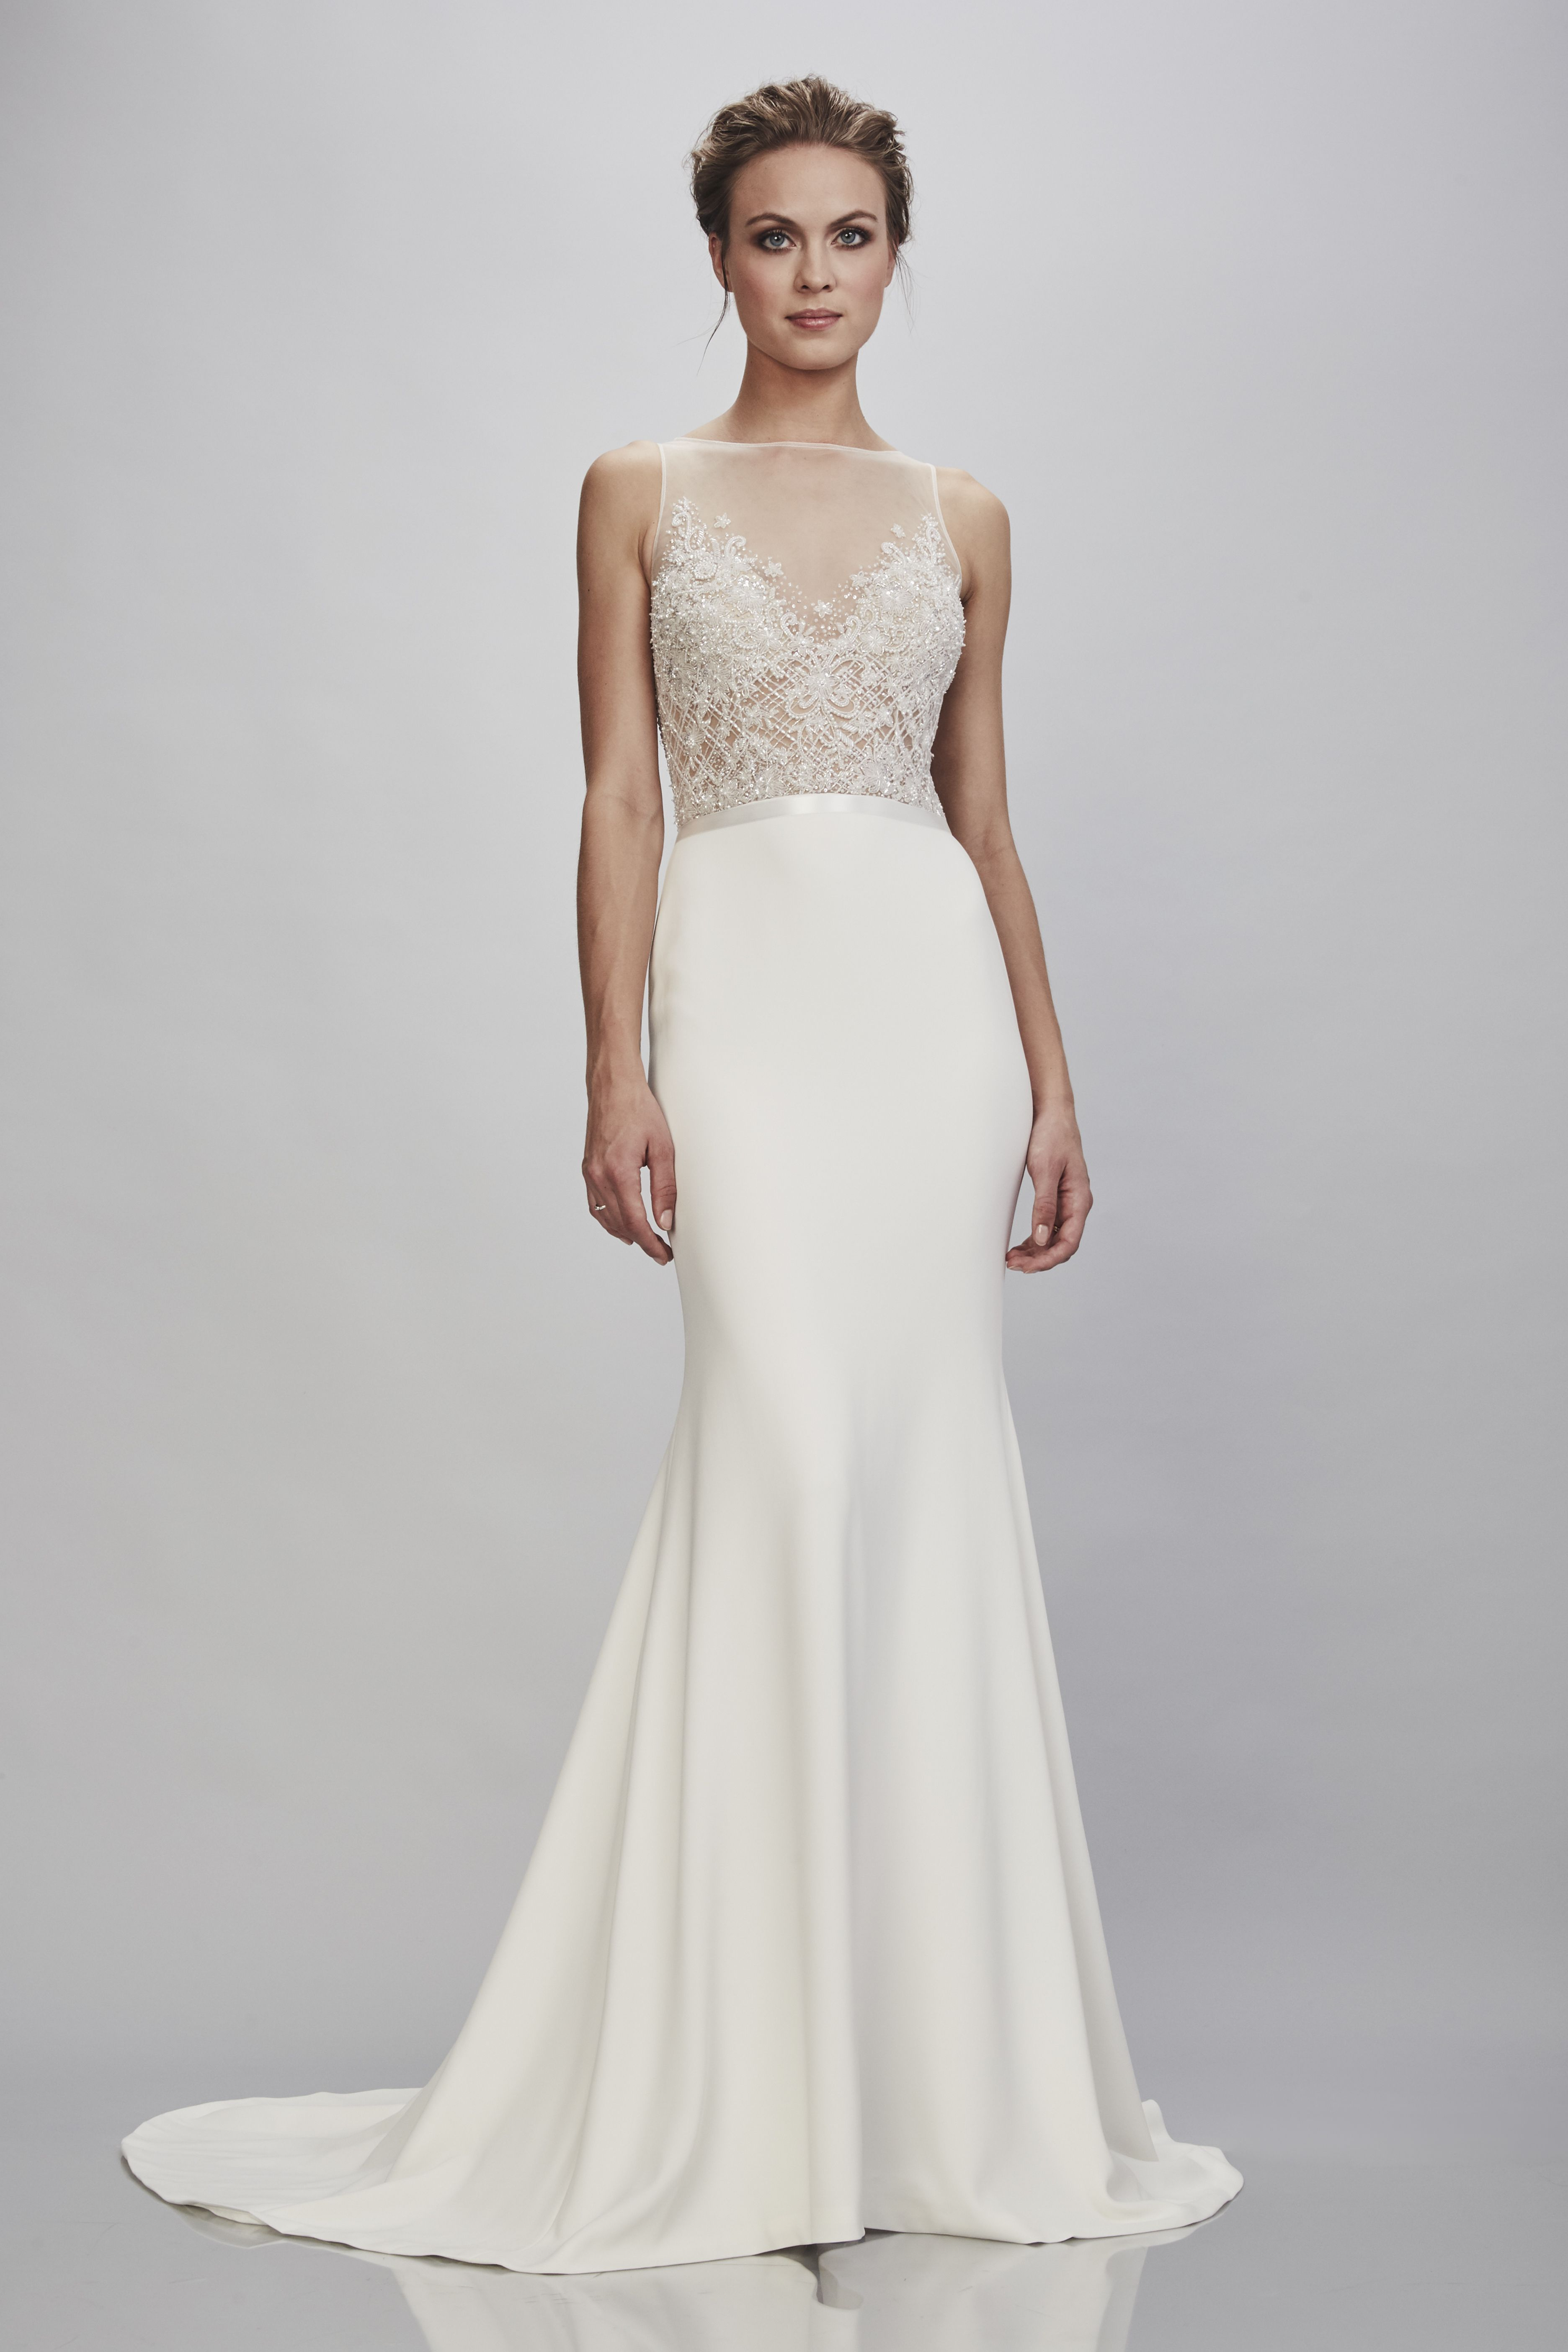 Amalia Sexy amalia bridal gown @ theia bridal | theia bridal, bridal